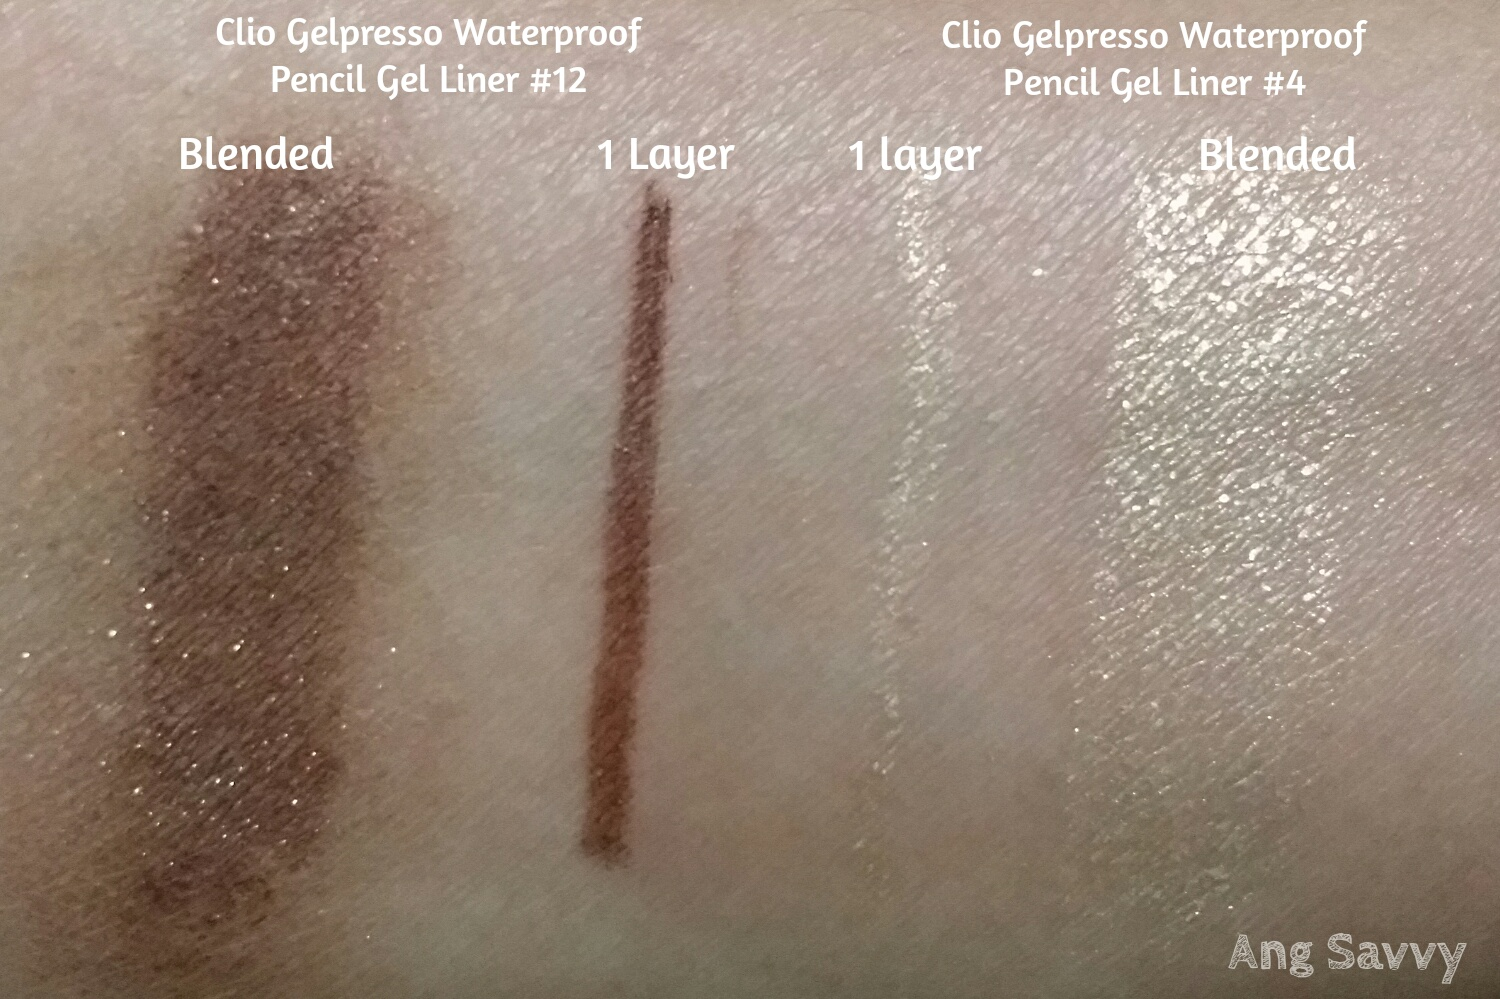 Clio Gelpresso Waterproof Pencil Gel Liner Swatch